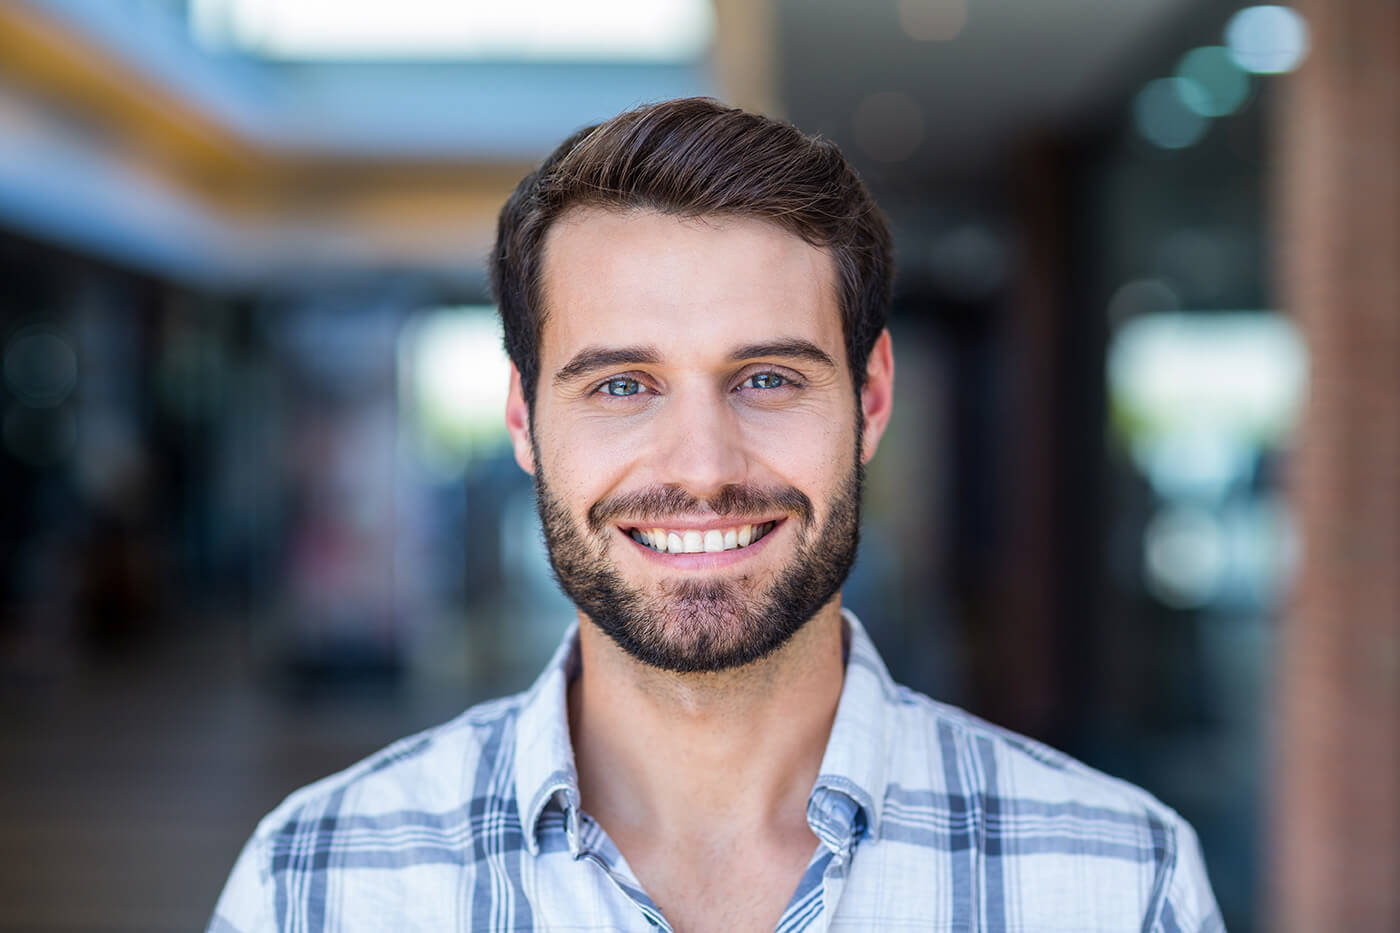 man smiling with teeth